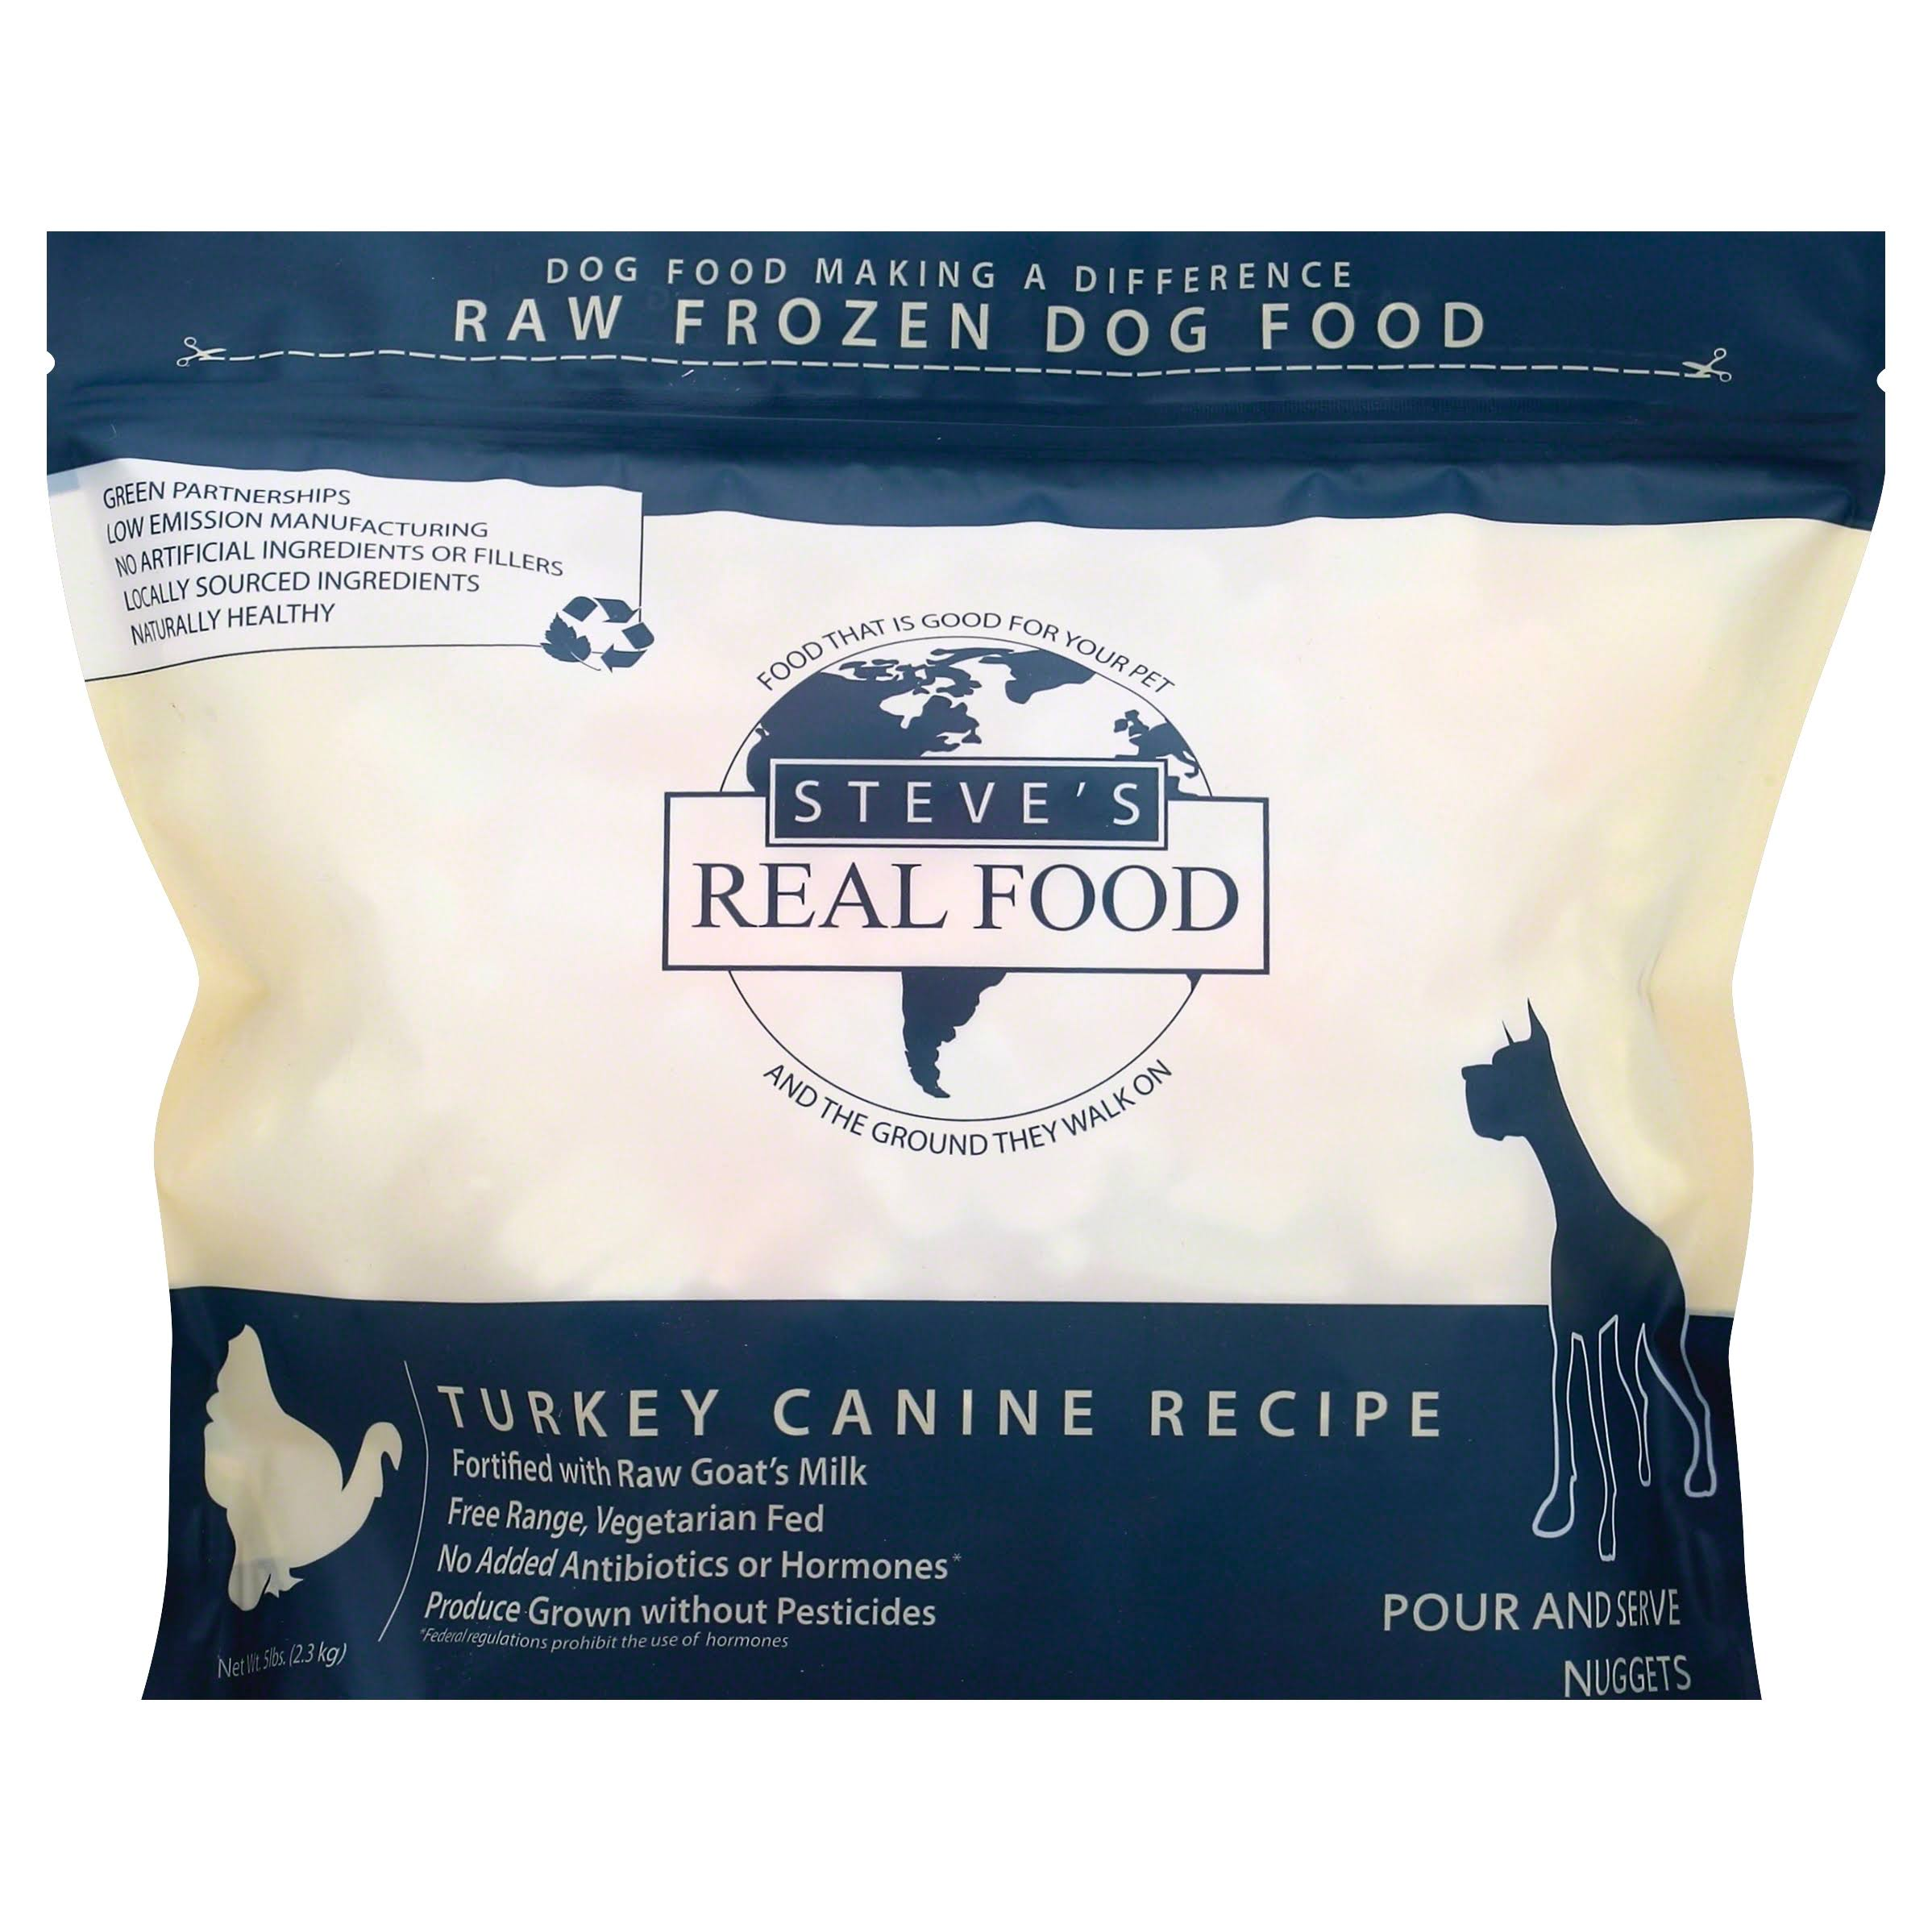 Steves Real Food Dog Food, Raw Frozen, Turkey Canine Recipe, Pour and Serve Nuggets - 5 lb